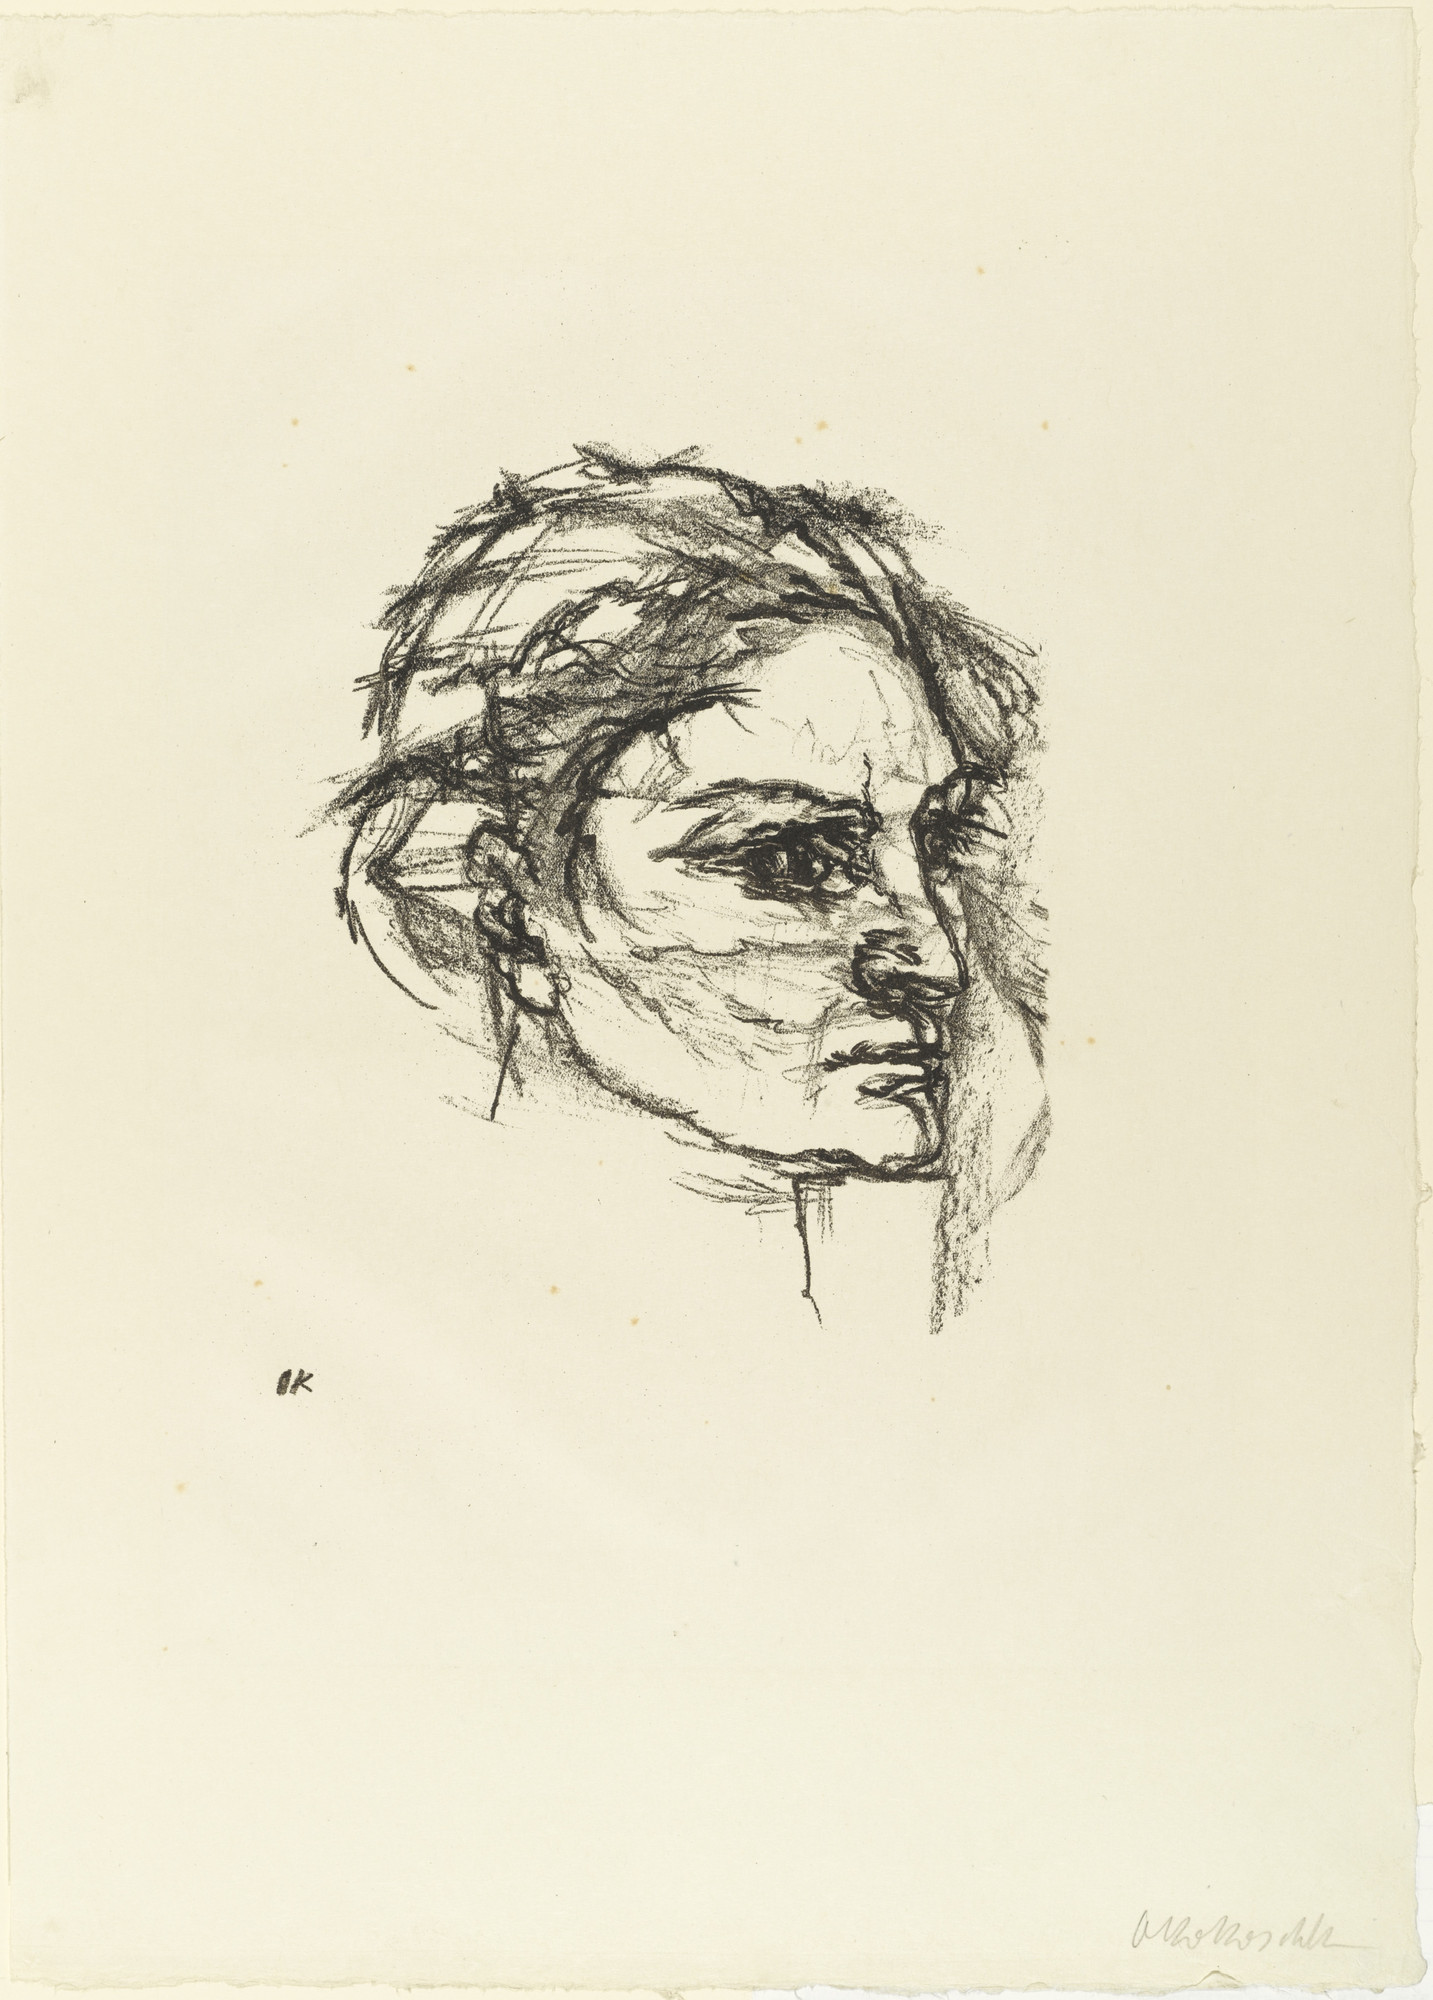 Oskar Kokoschka. The Face of Woman (Des Gesicht des Weibes) from The Bound Columbus (Der gefesselte Columbus). 1916 (executed 1913)